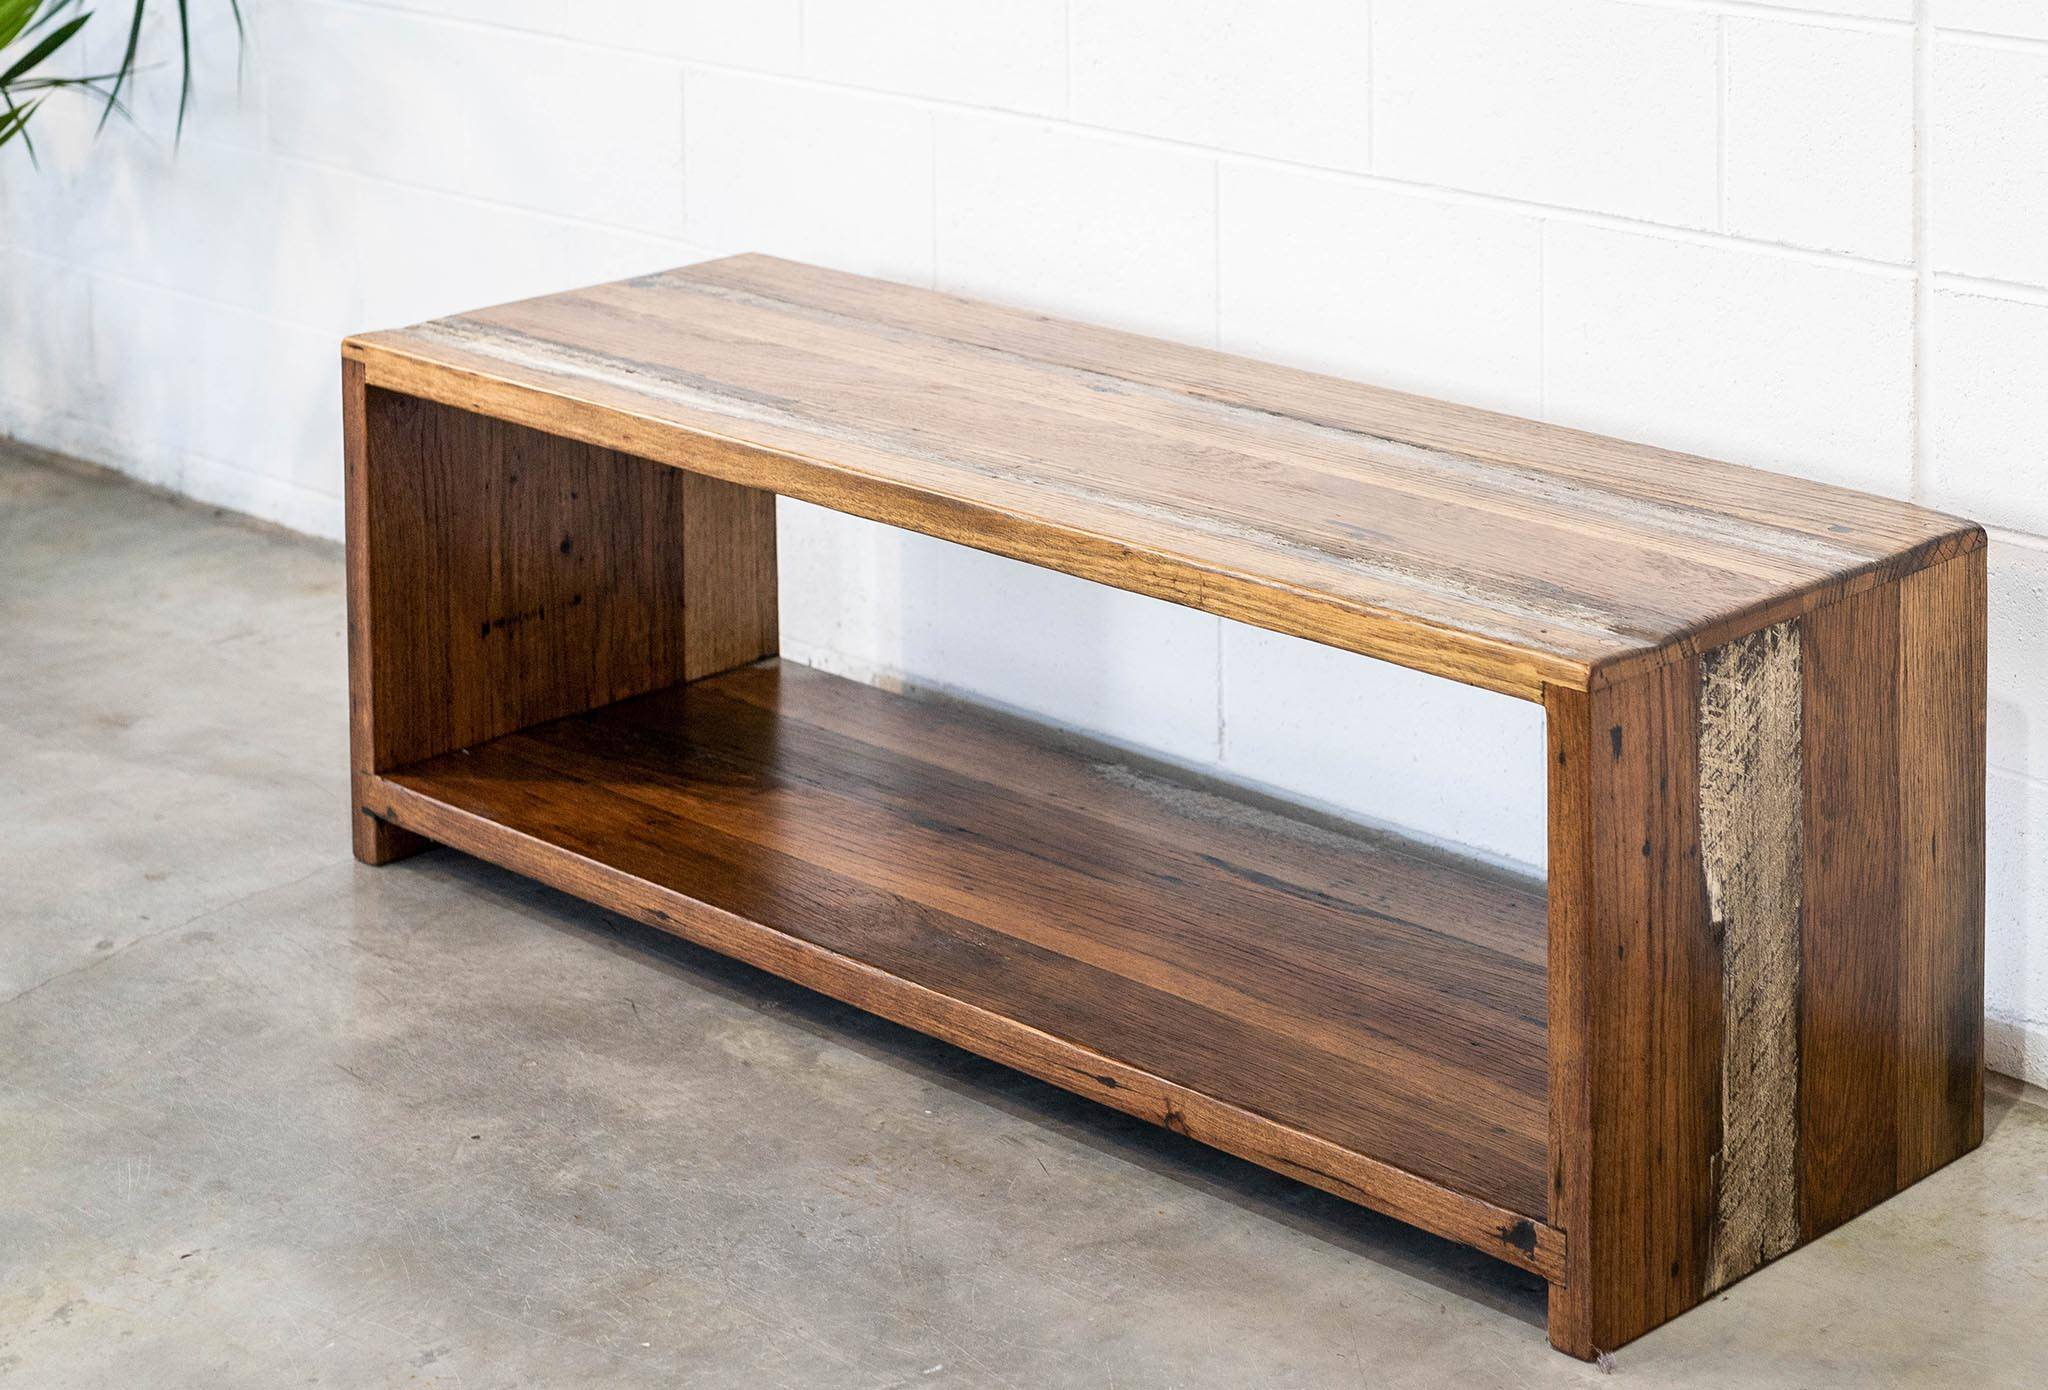 Recycled Timber Entertainment Unit Rustic Style, Stringy Bark. Skip/BJ